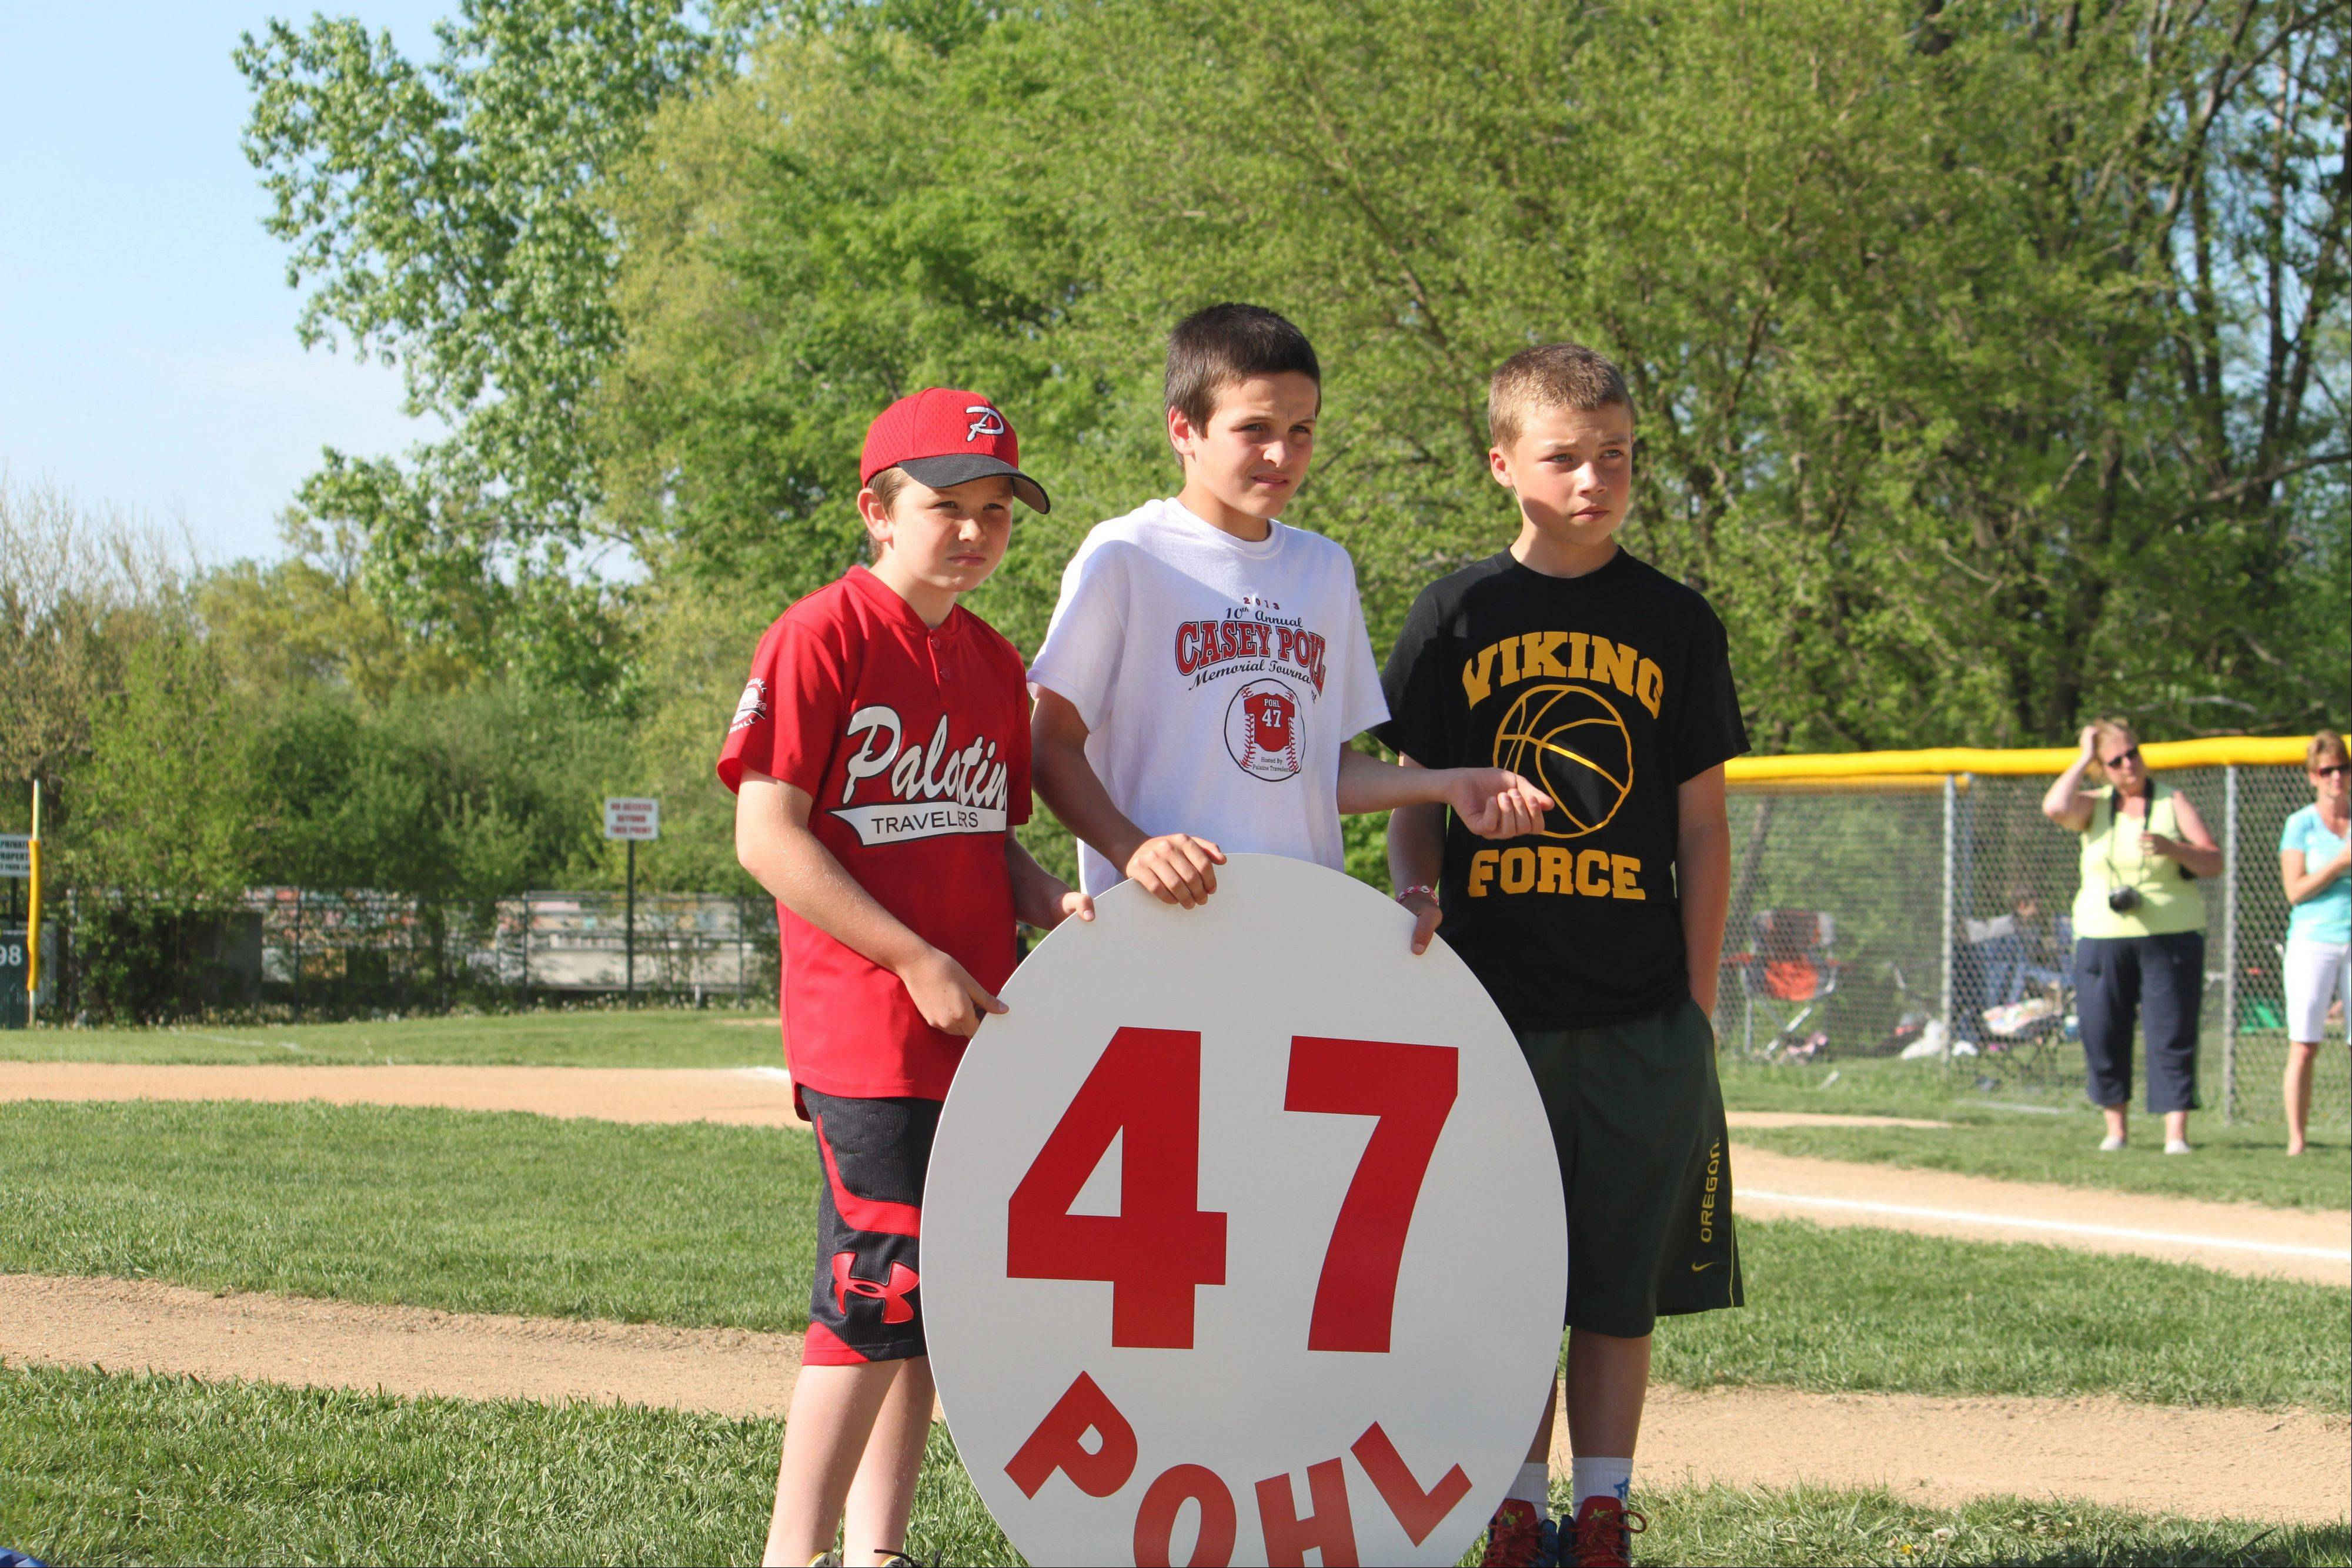 Ben Kurka, Austin Higgins and Will Ferry hold a placard bearing Casey Pohl's name and number that will be affixed to the outfield wall at Fuller Field in Palatine. Pohl died in 2003 from cancer.